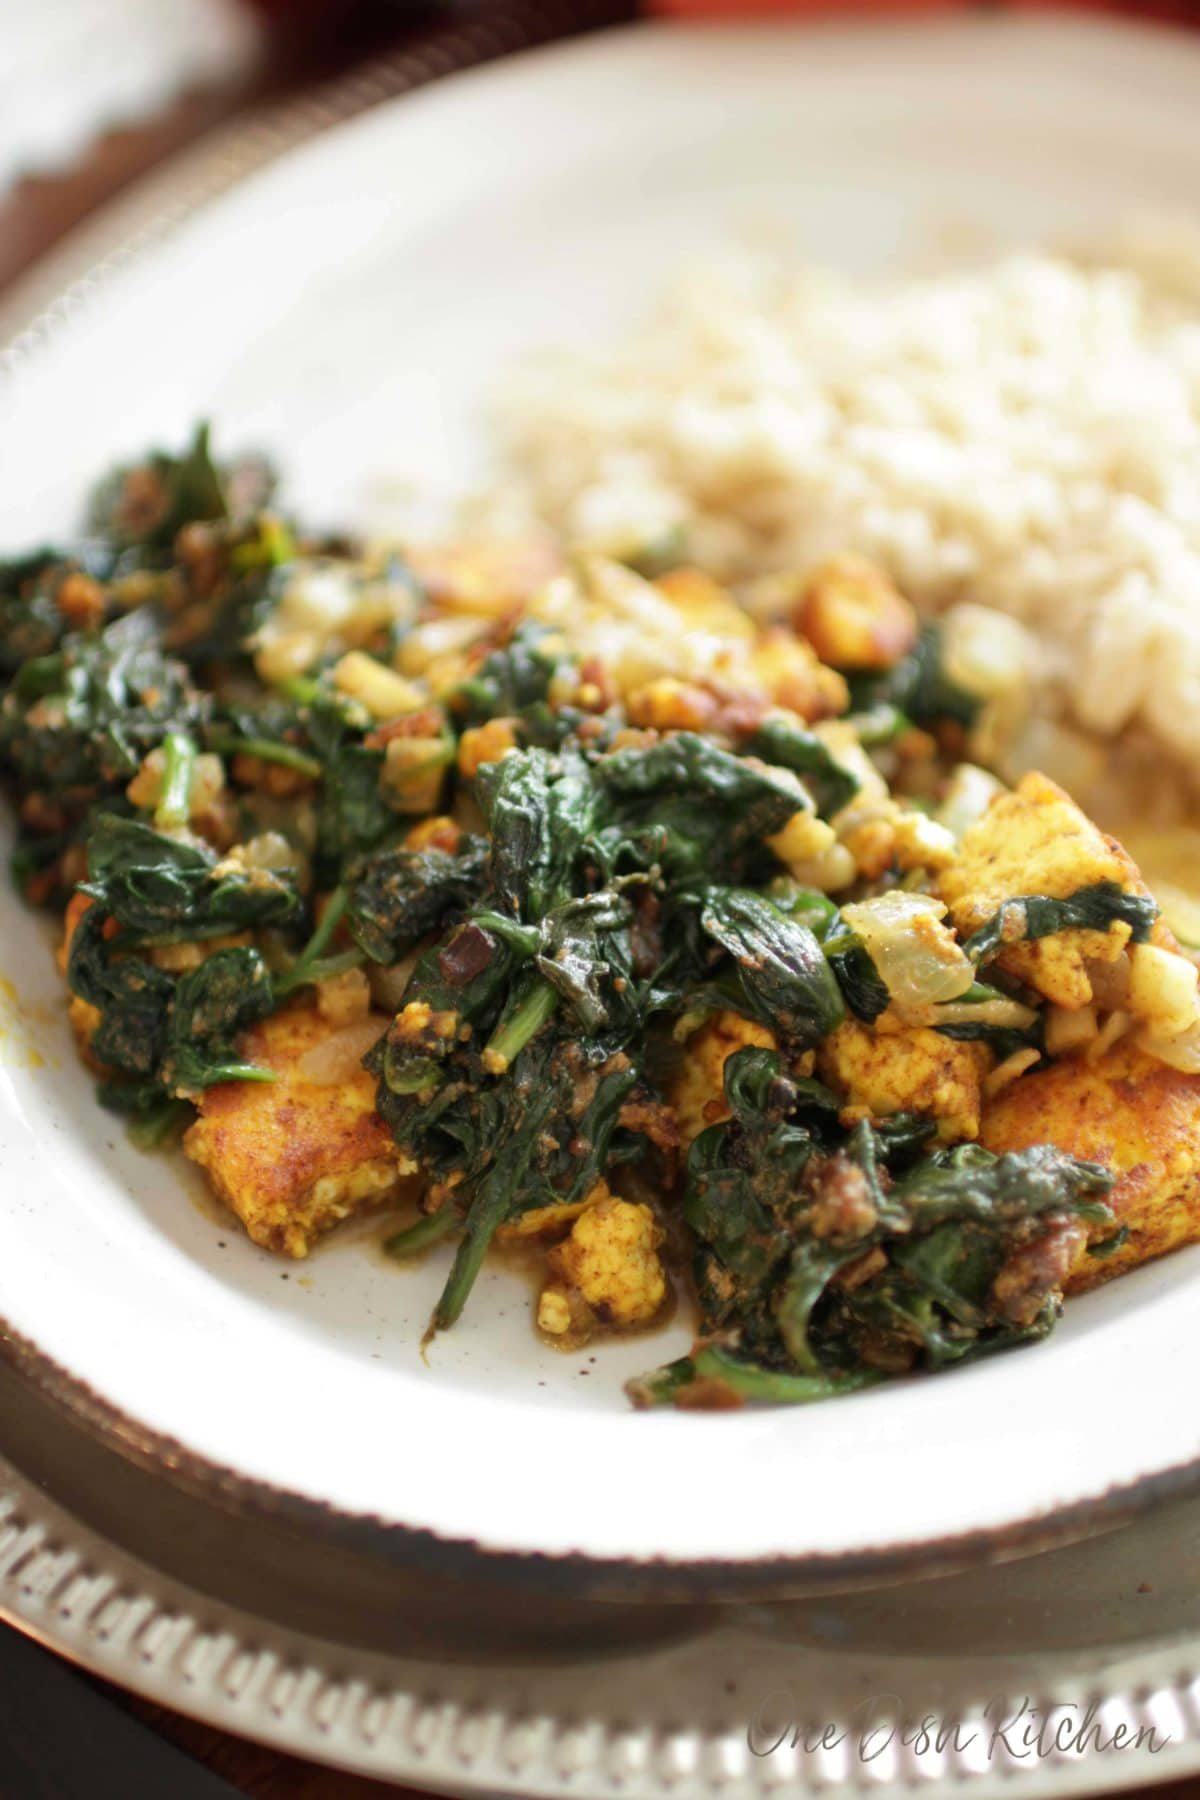 A close up of saag paneer on a plate with white rice